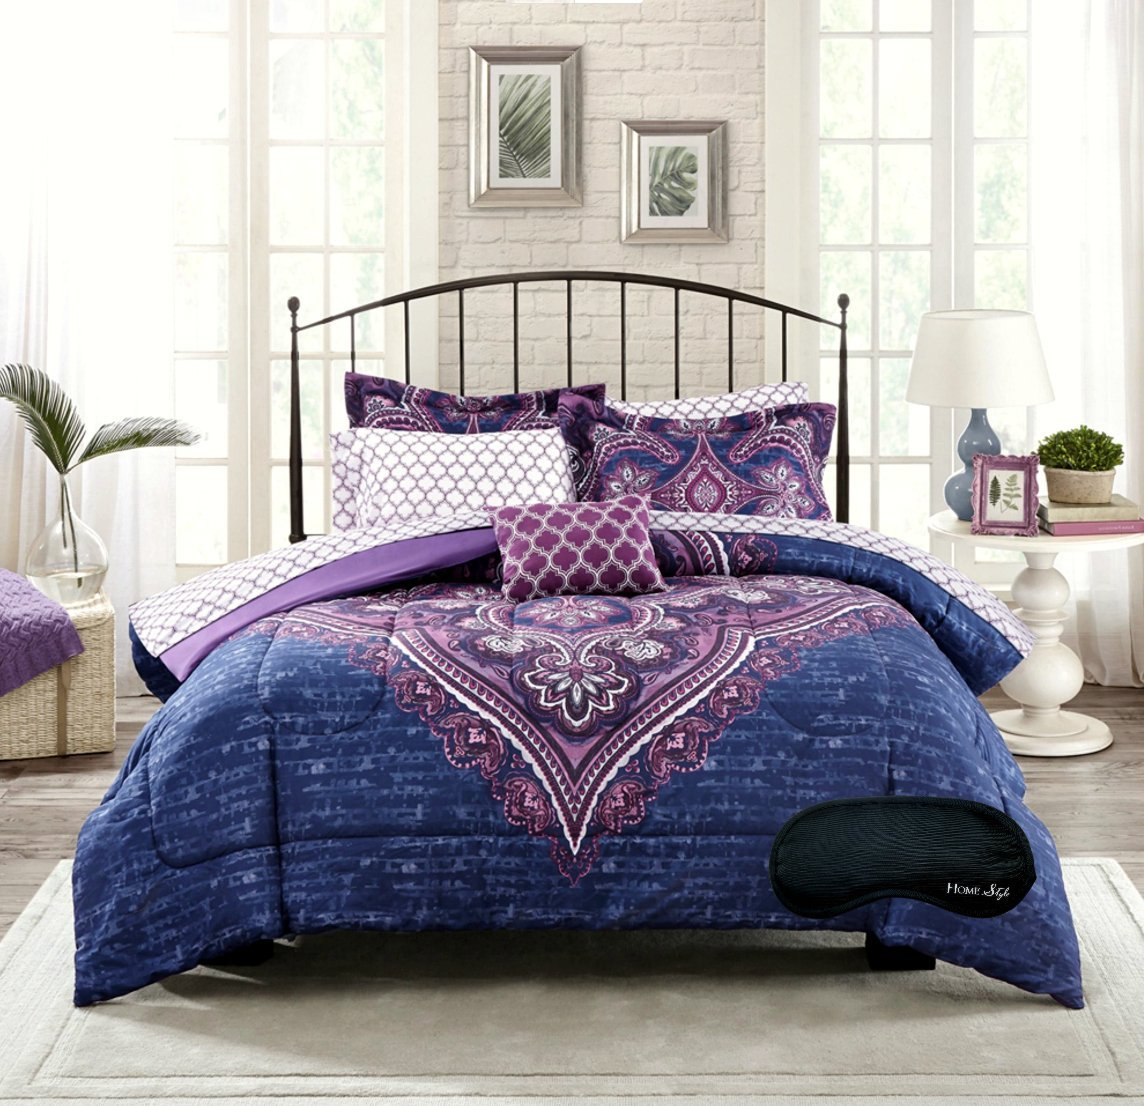 New! Boho Chic Paisley Medallion Damask Blue Purple Twin / Twin XL Teen Girls Comforter, Shams, Sheet Set, Toss Pillow +BONUS Home Style Sleep Mask! (7 Pc. Bedding Bundle) (Twin/Twin XL))